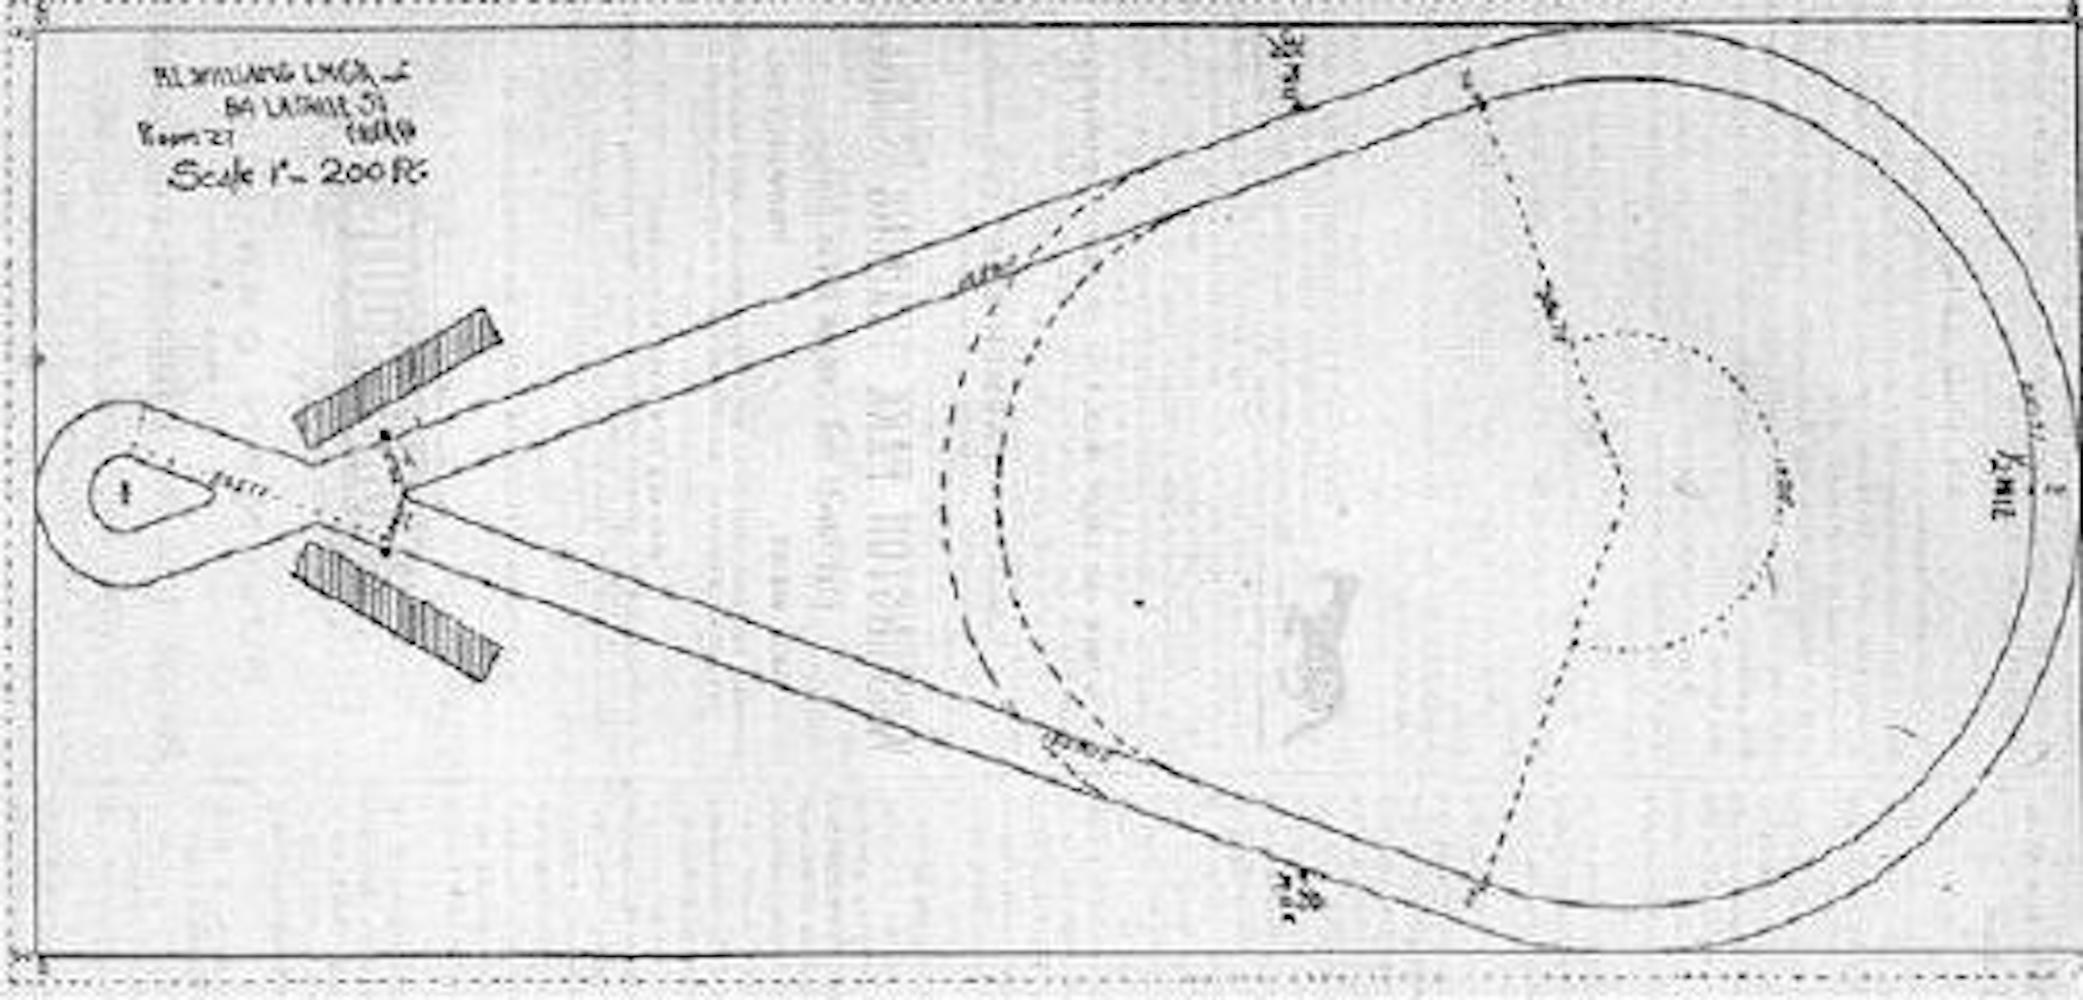 Dr. James McCoy's innovate kite track in Kirkwood made Delaware the speed capital of American horse racing.